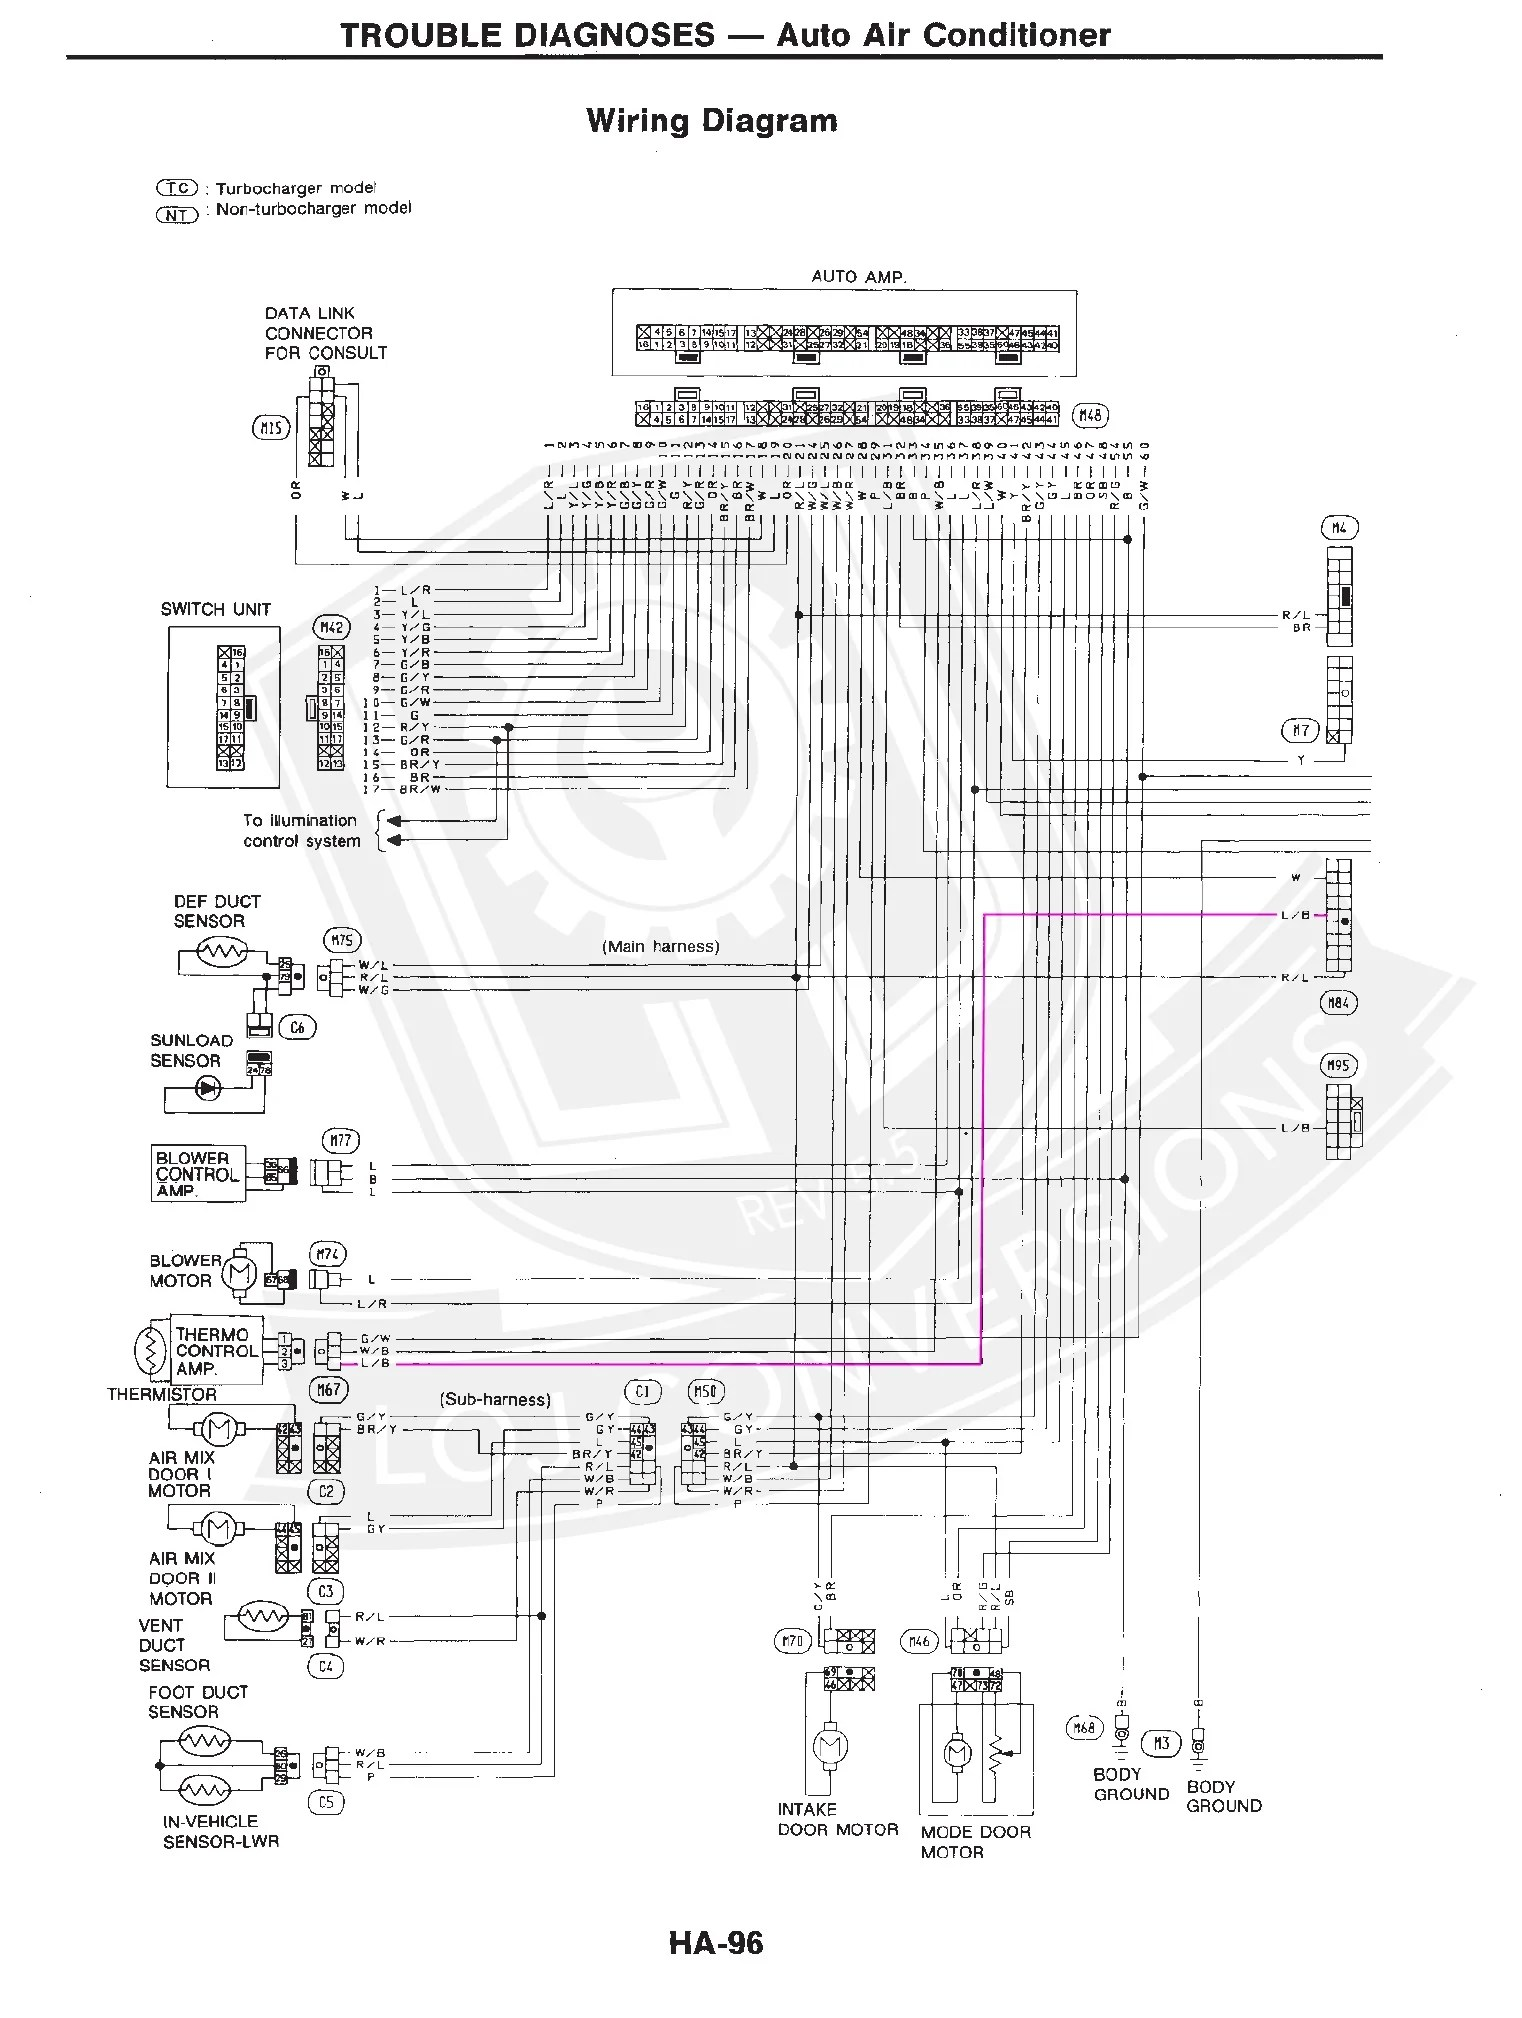 wiring diagram also 1990 nissan 300zx engine wiring harness further 1990 nissan 300zx wiring harness diagram [ 1522 x 2018 Pixel ]